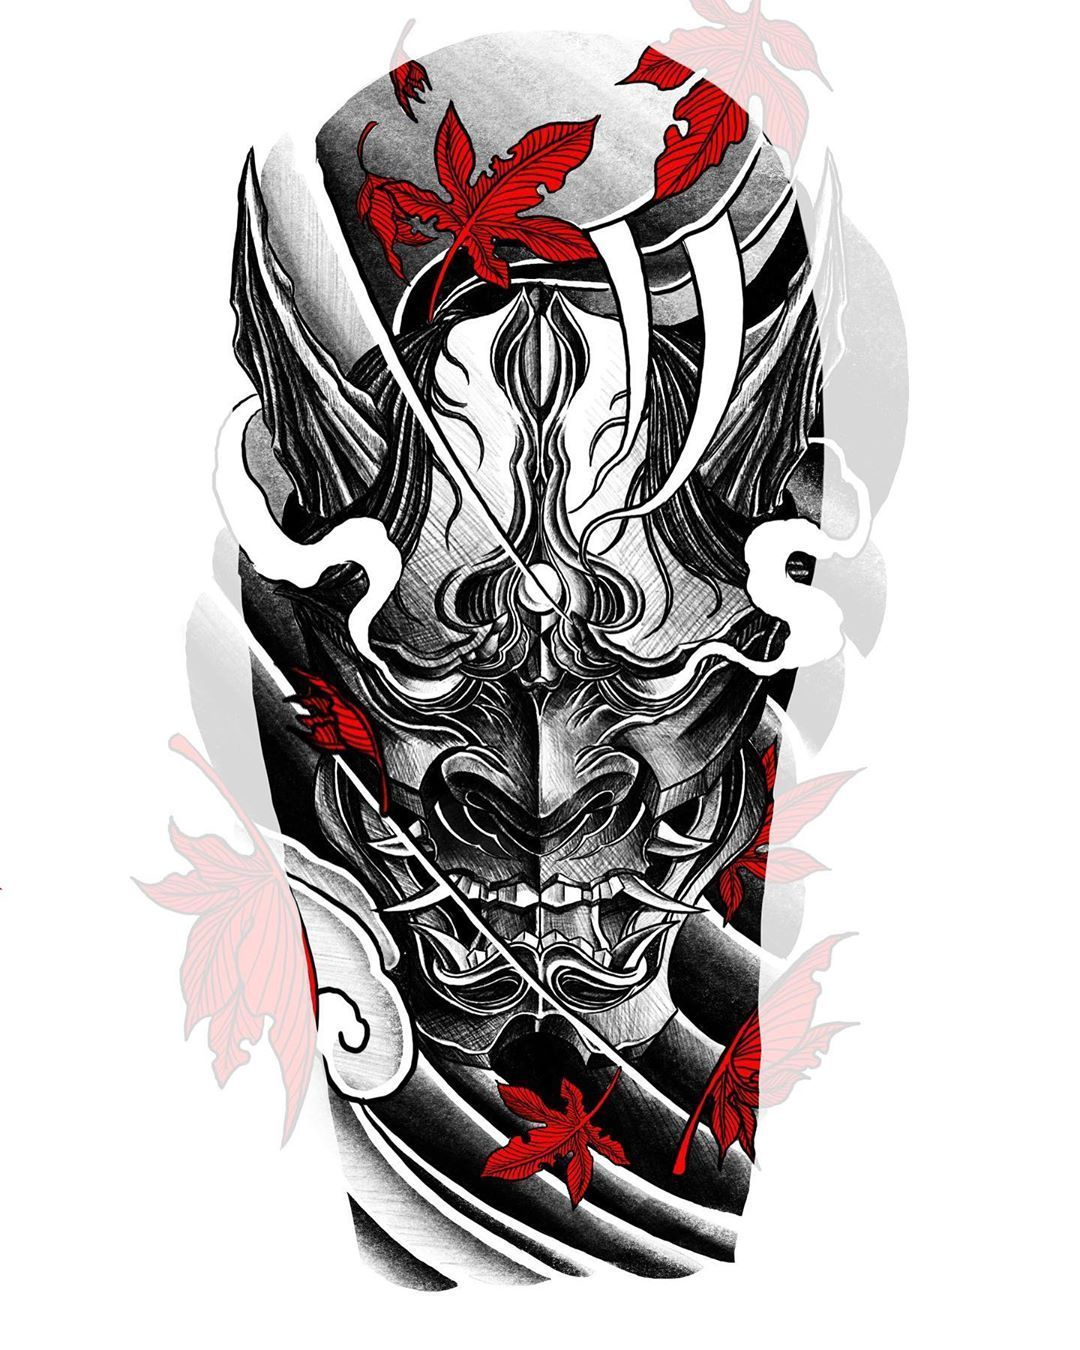 Amazing Japanese Style Shoulder Tattoo Sketch Samurai Tattoo Sleeve Japanese Warrior Tattoo Japanese Mask Tattoo